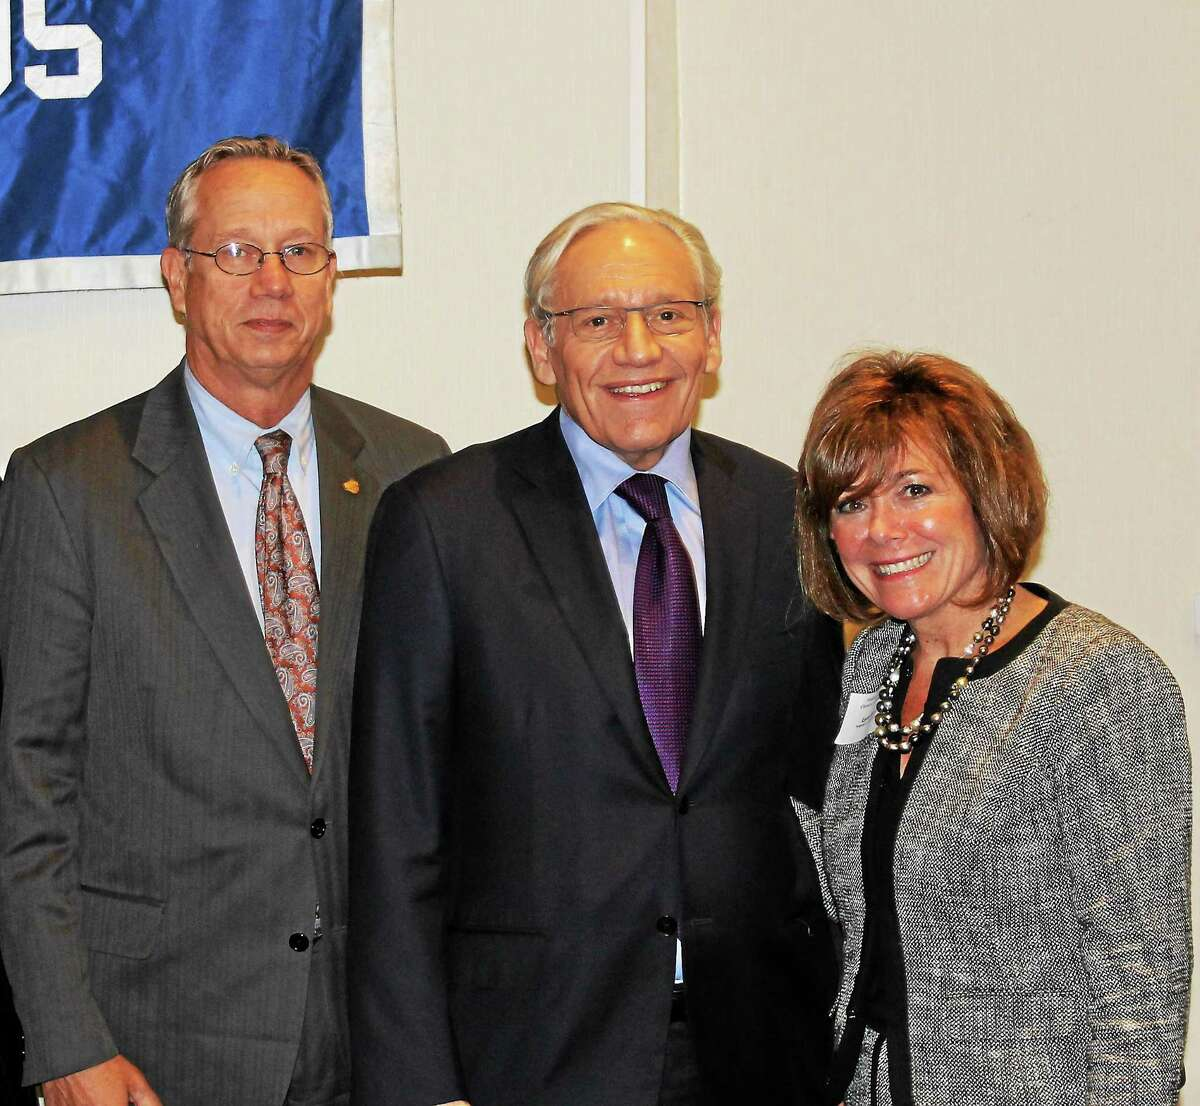 From left, Essex Savings Bank President and Chamber Vice Chairman Greg Shook, author and Washington Post investigative reporter Bob Woodward, Hospital for Special Care President and CEO Lynn Ricci are shown during the special chamber luncheon last week.